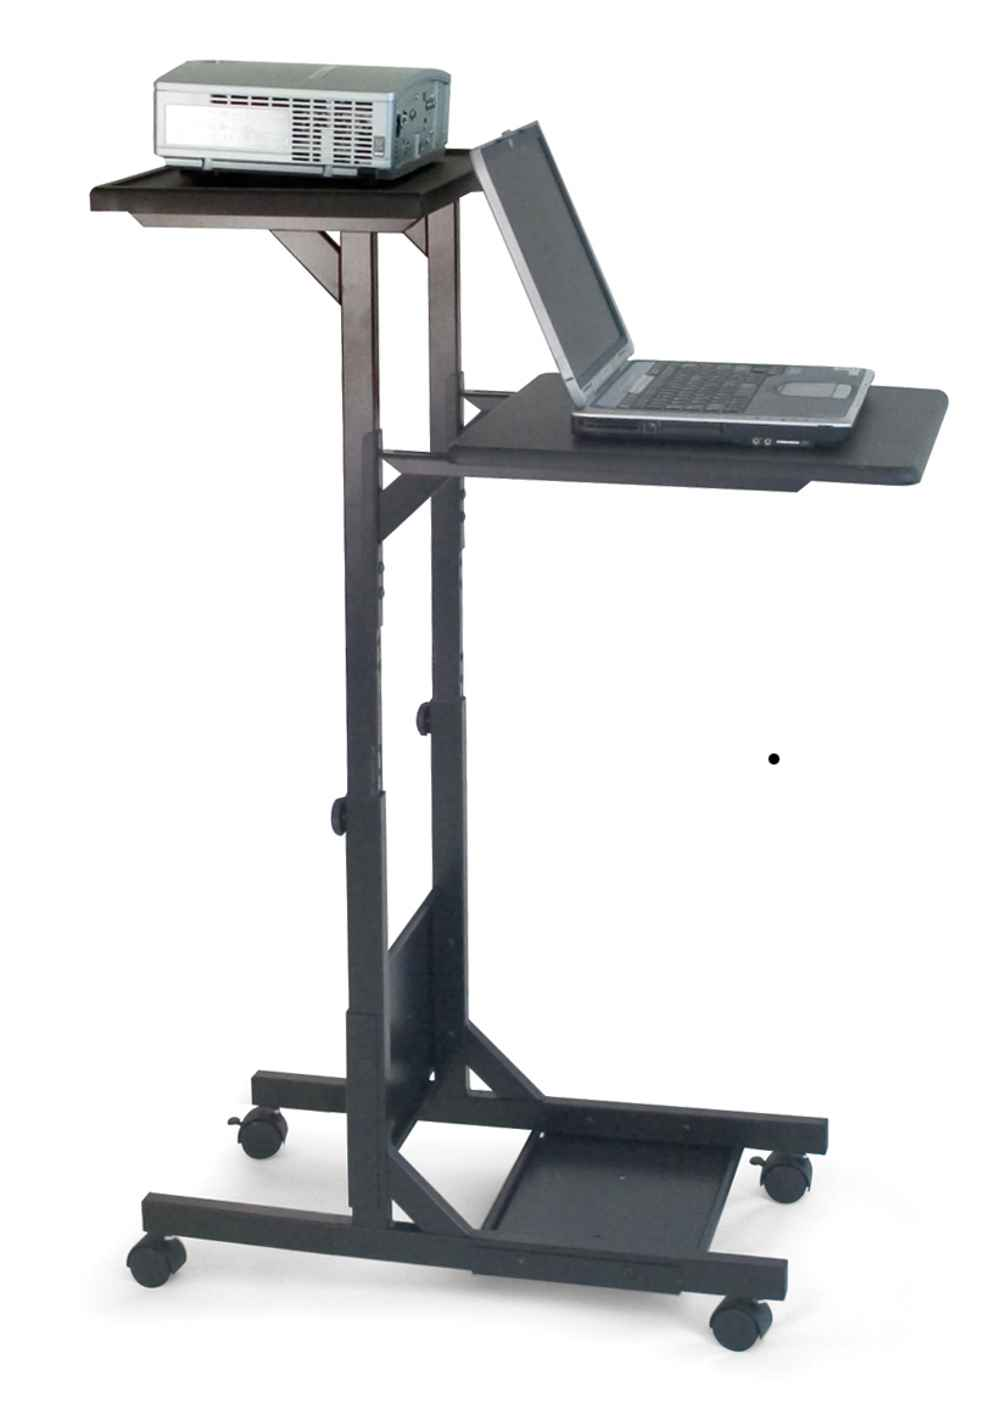 H Wilson Mobile Laptop Stands for Presentation